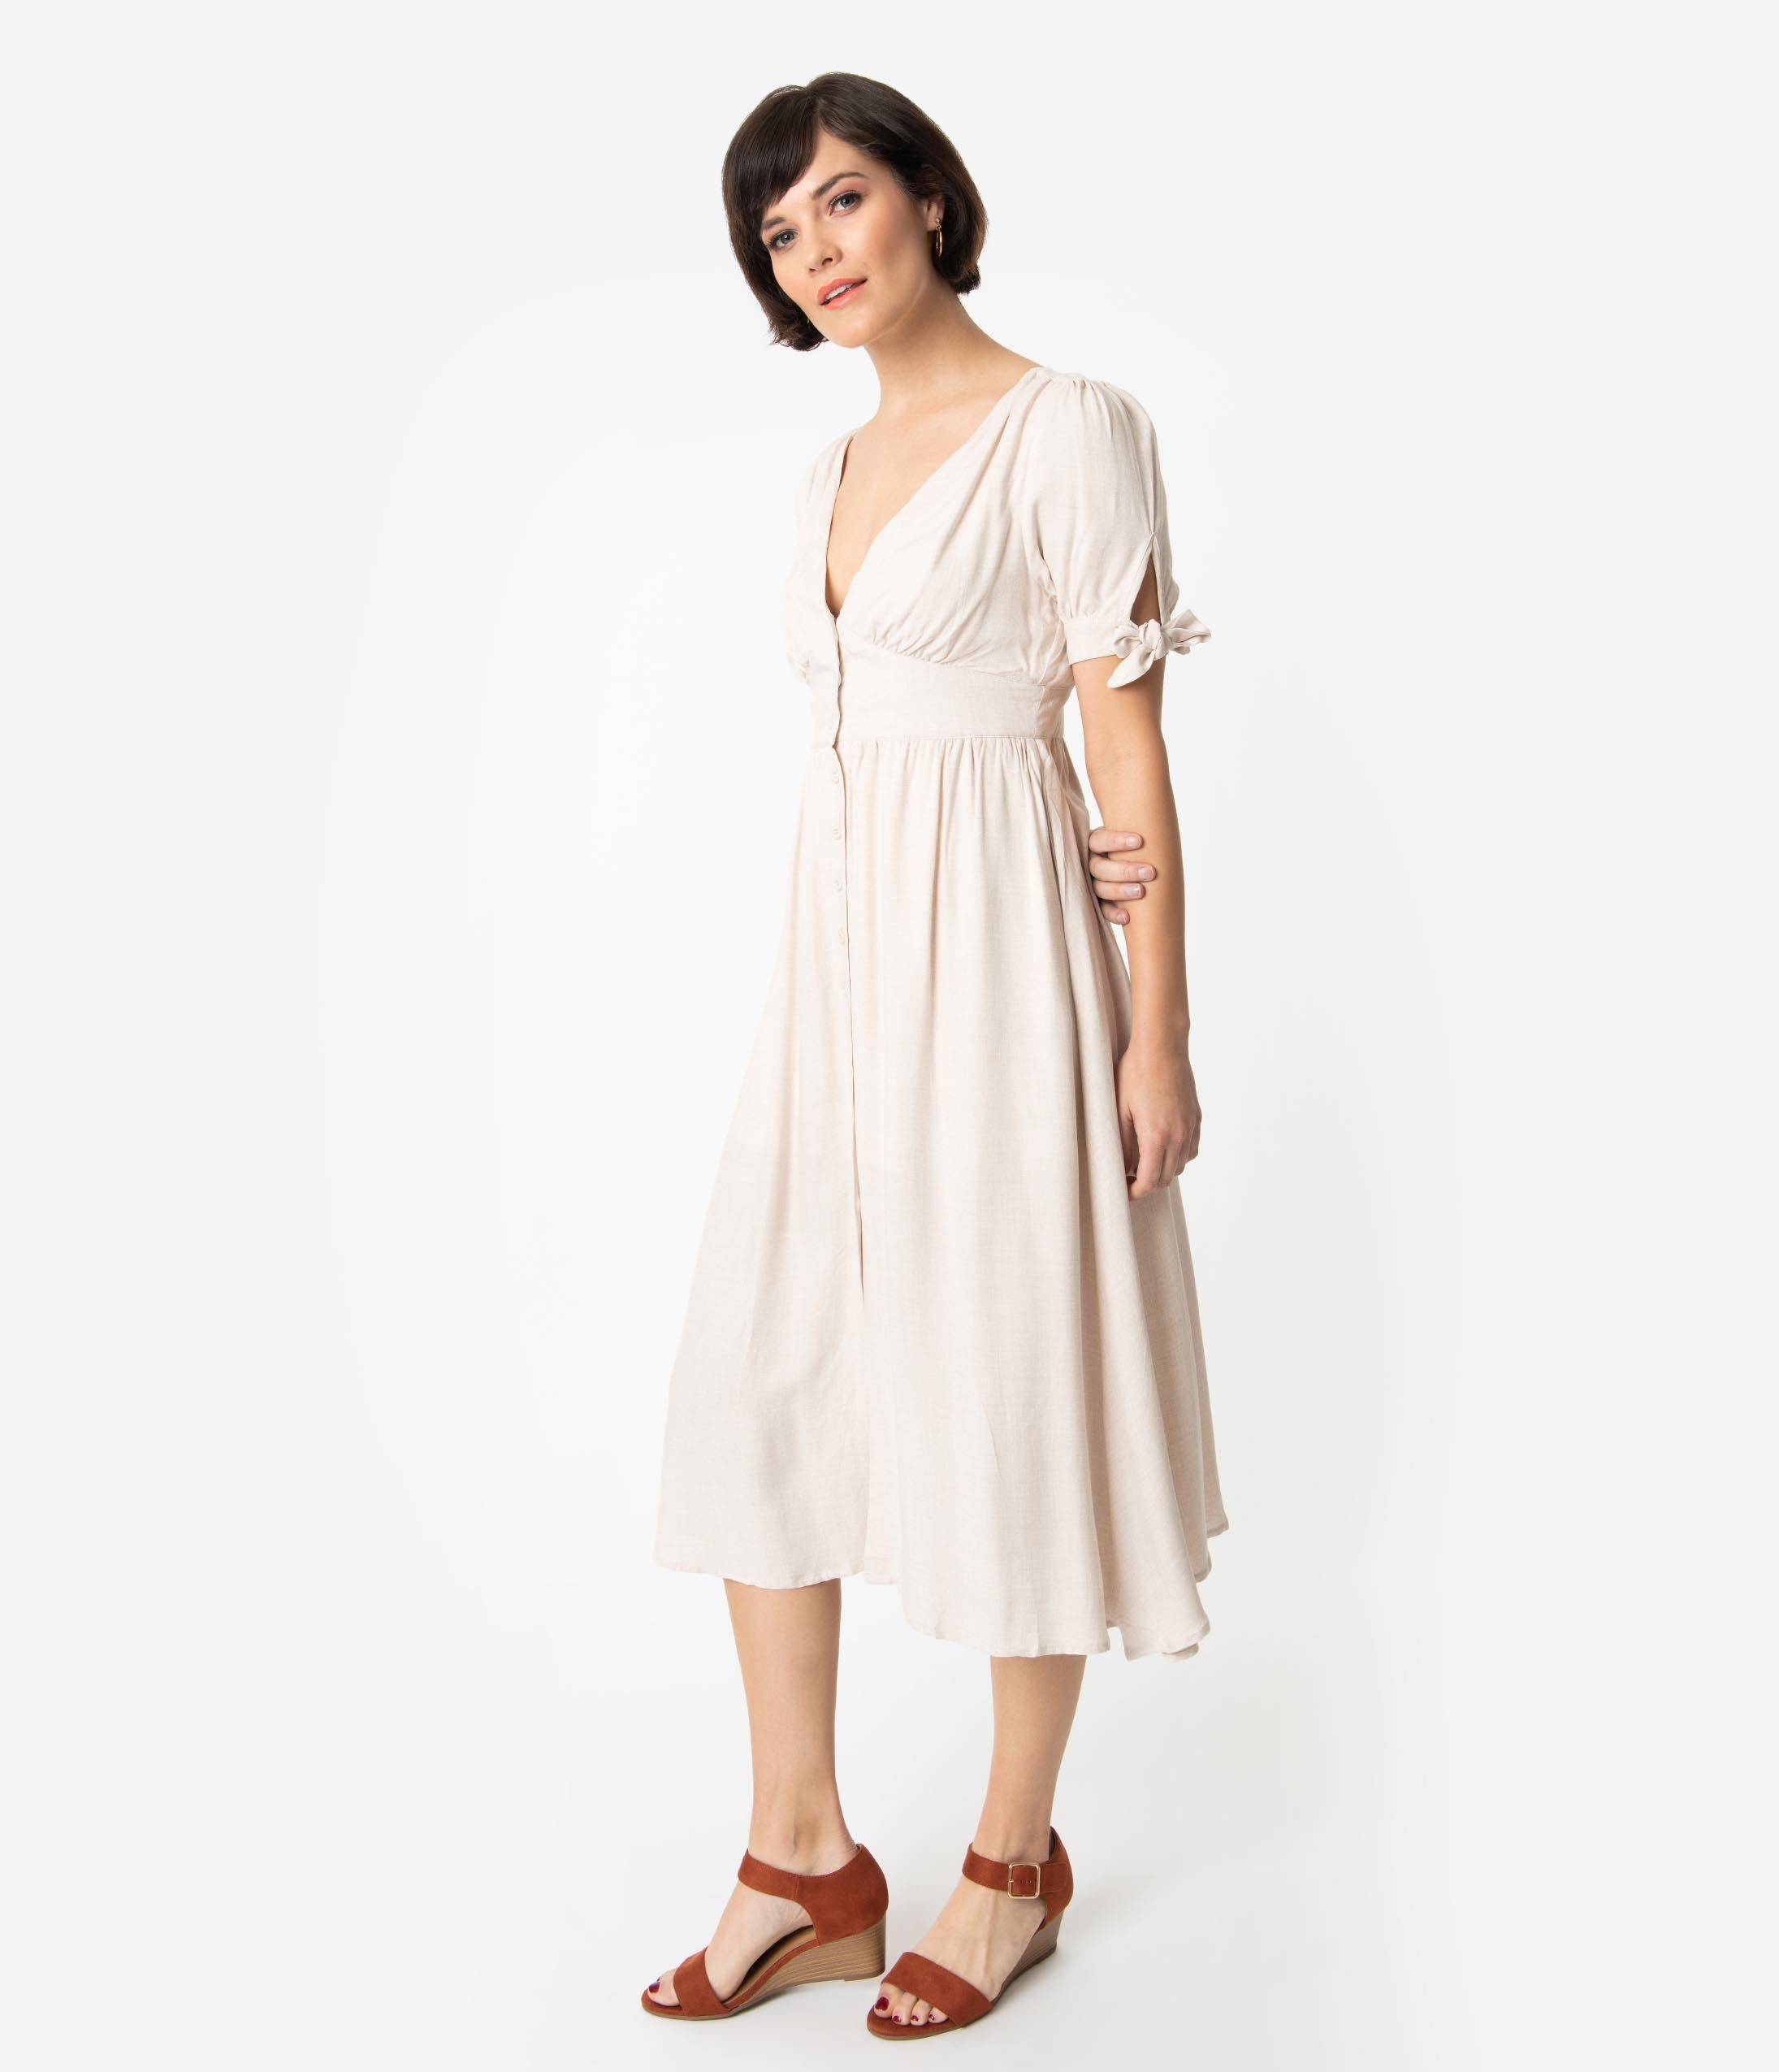 b7f4cc0c3e 1930s Style Toasted Oatmeal Woven Short Sleeve Button Up Midi Dress